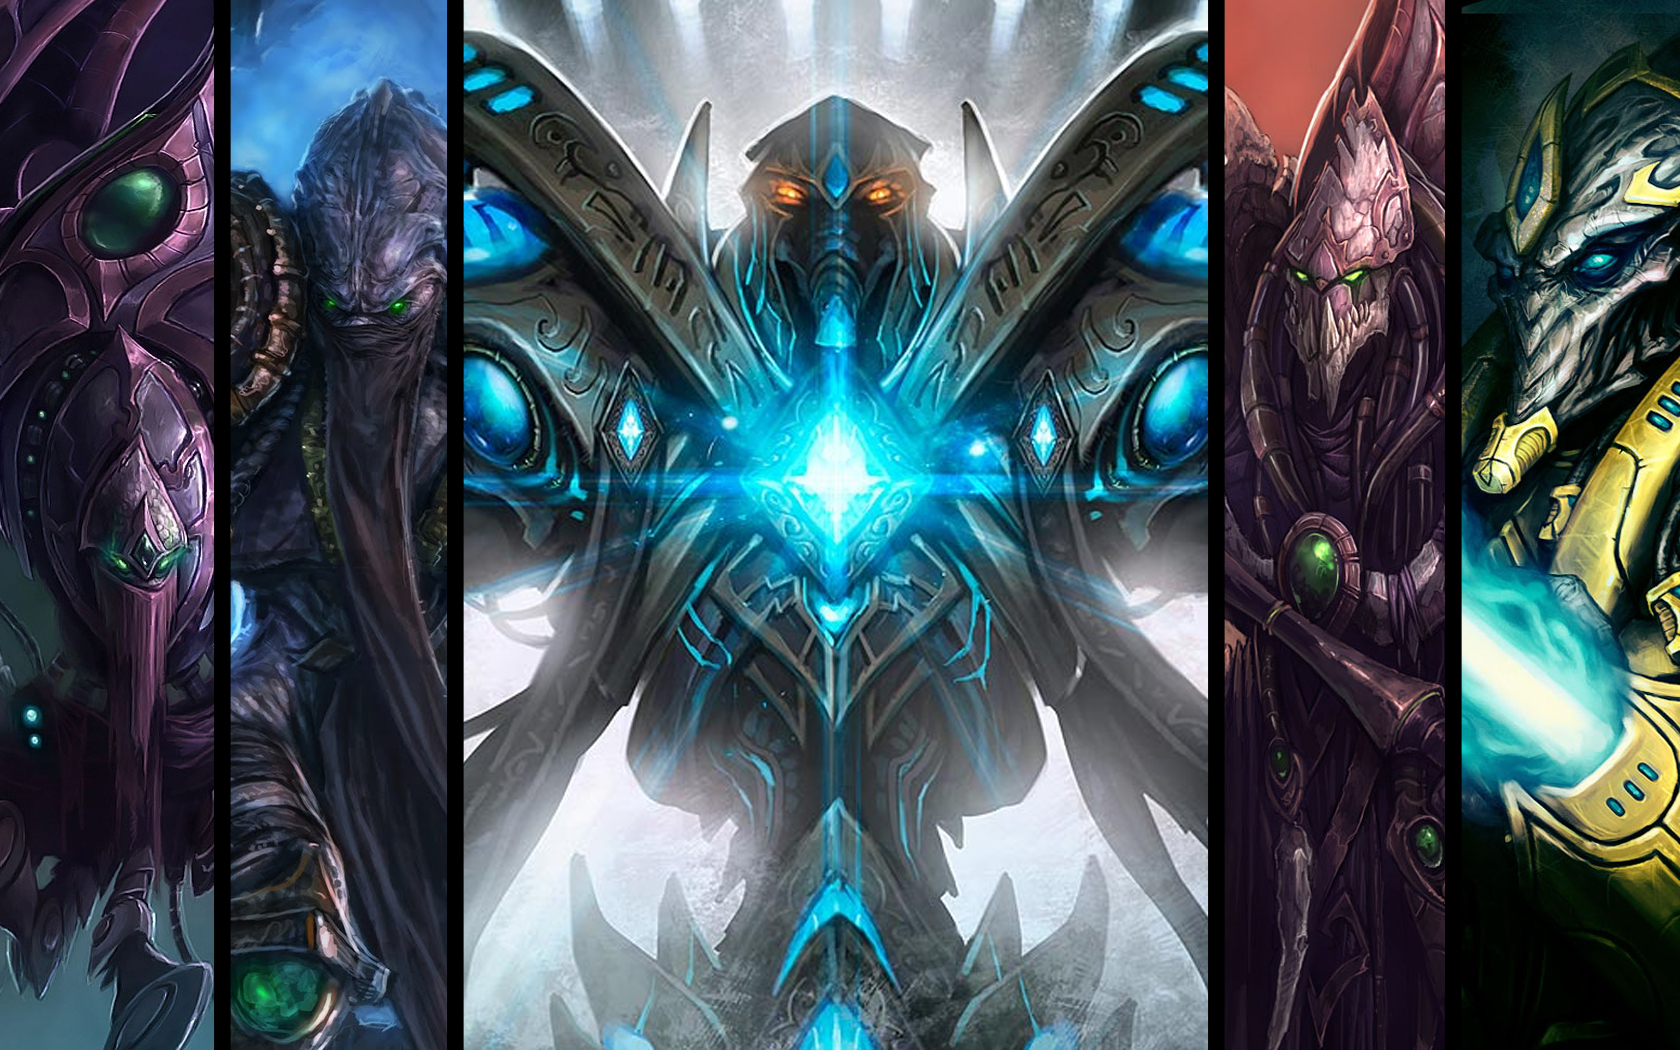 Inspired by the Protoss wallpaper I decided to try make one for